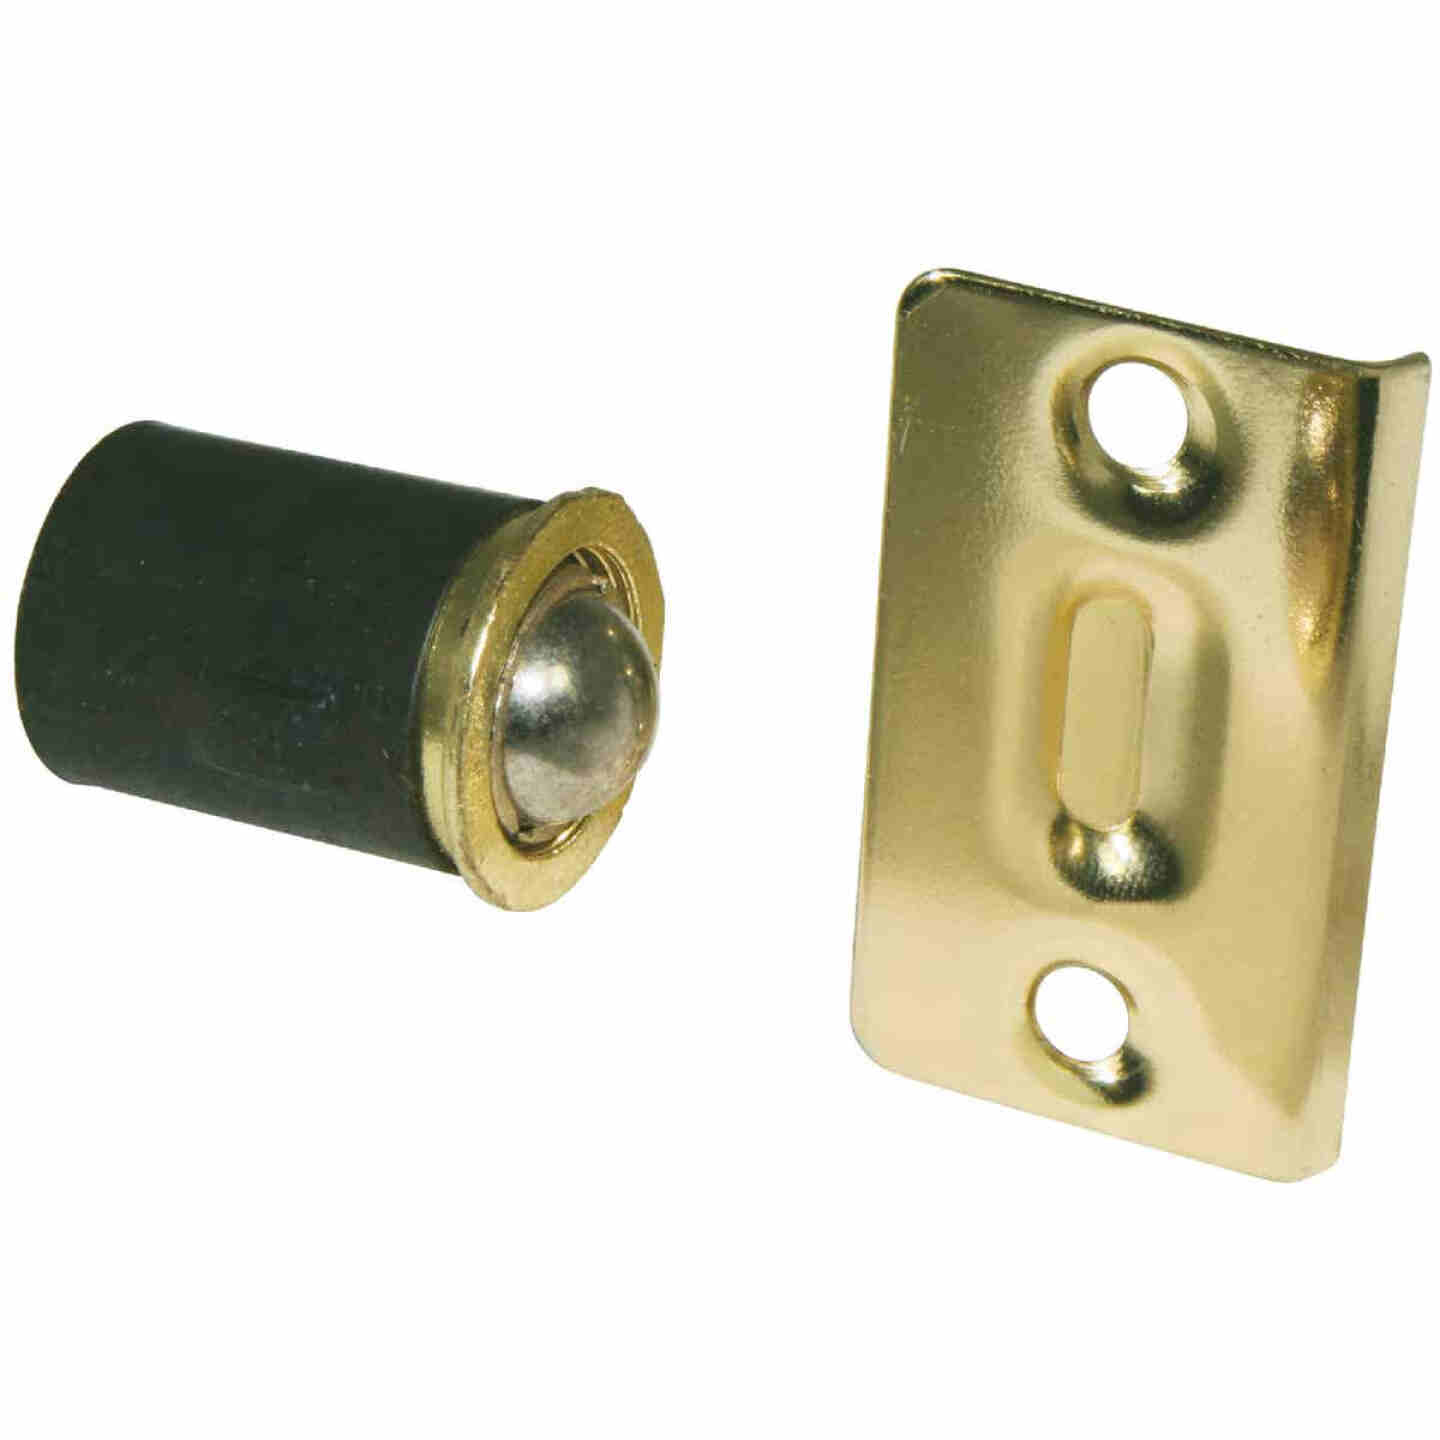 Ultra Hardware Polished Brass Closet Door Ball Catch Image 1